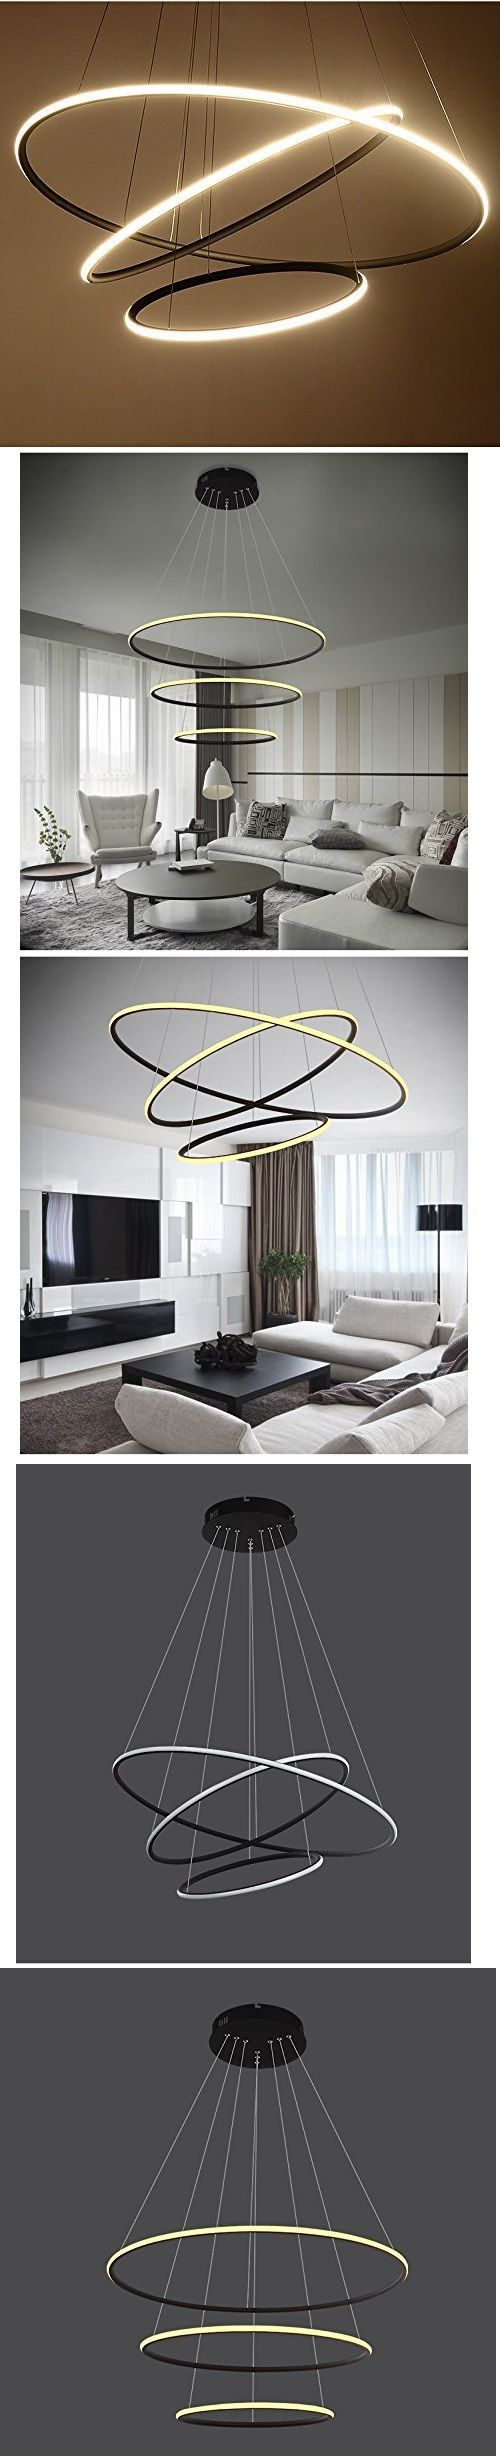 Circular LED Chandelier | Craze Trend